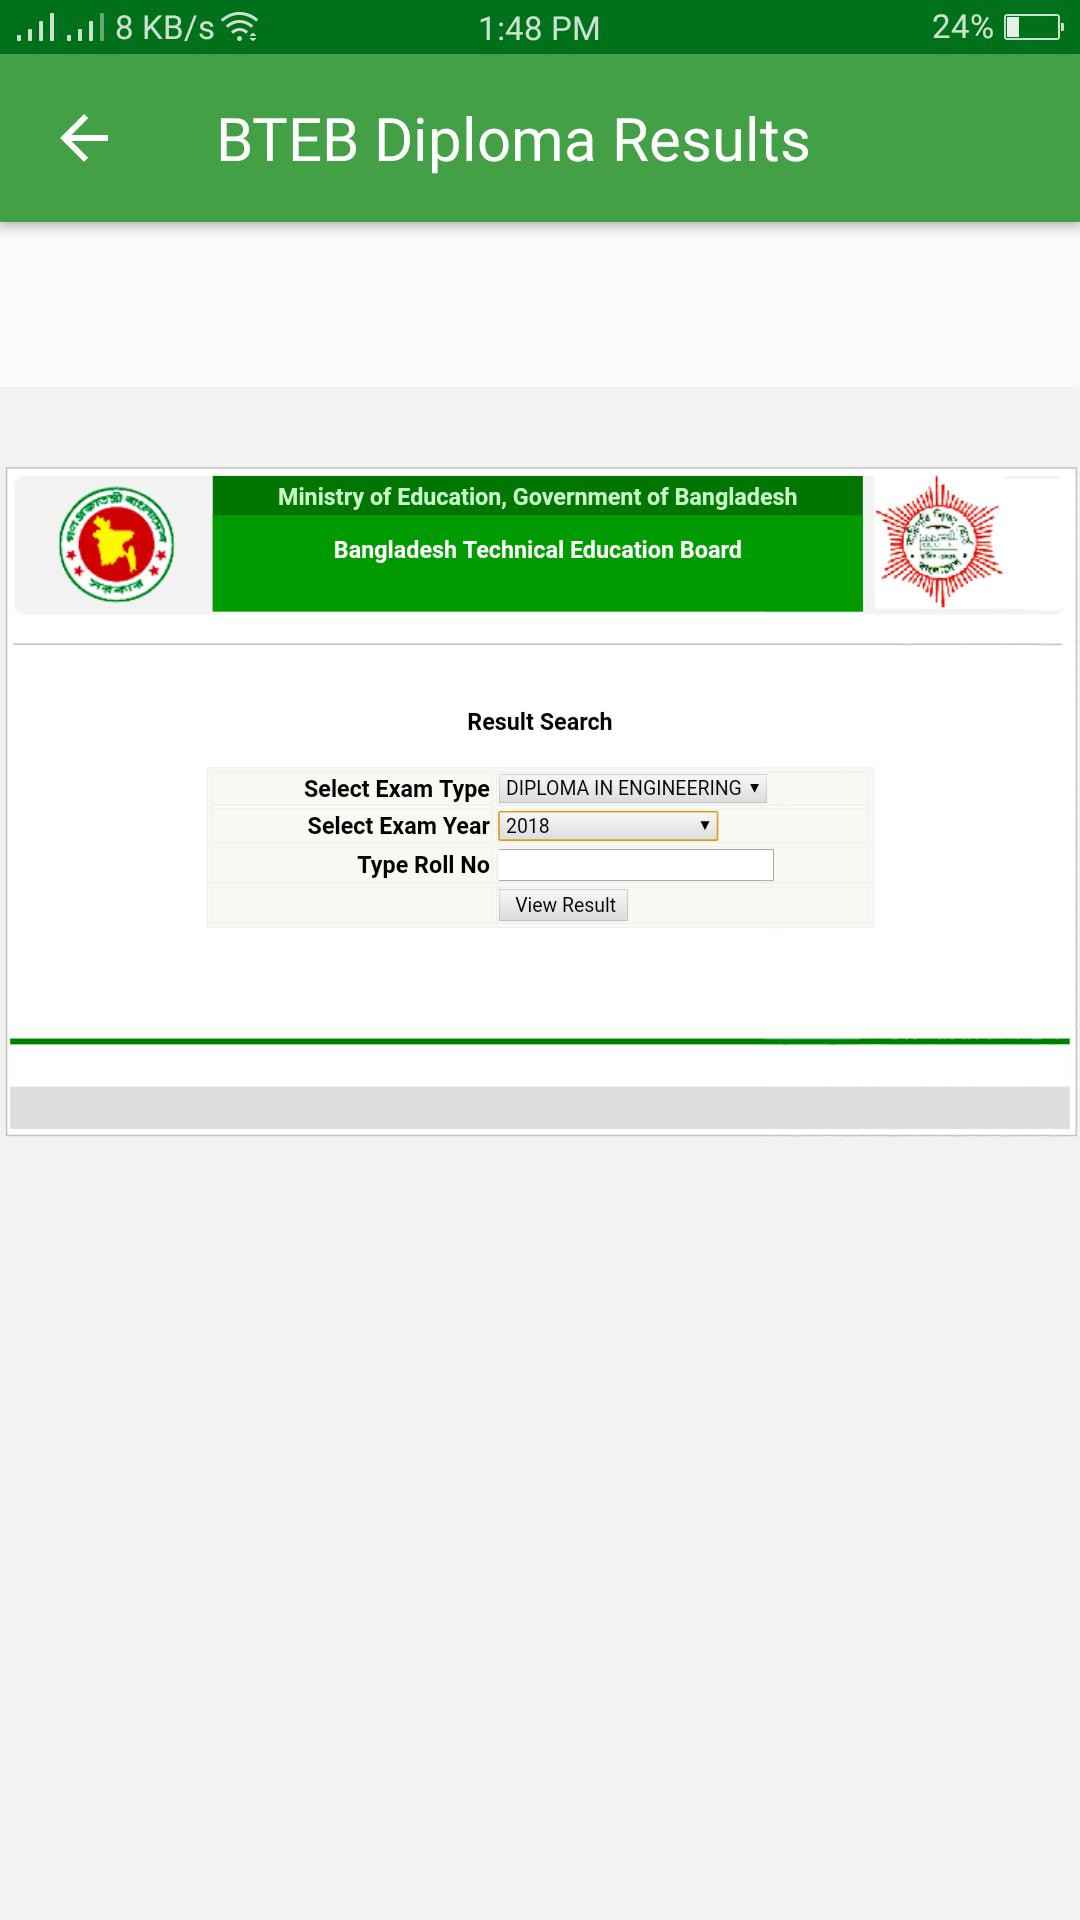 All Exam Results App 2019 - JSC SSC HSC NU for Android - APK Download